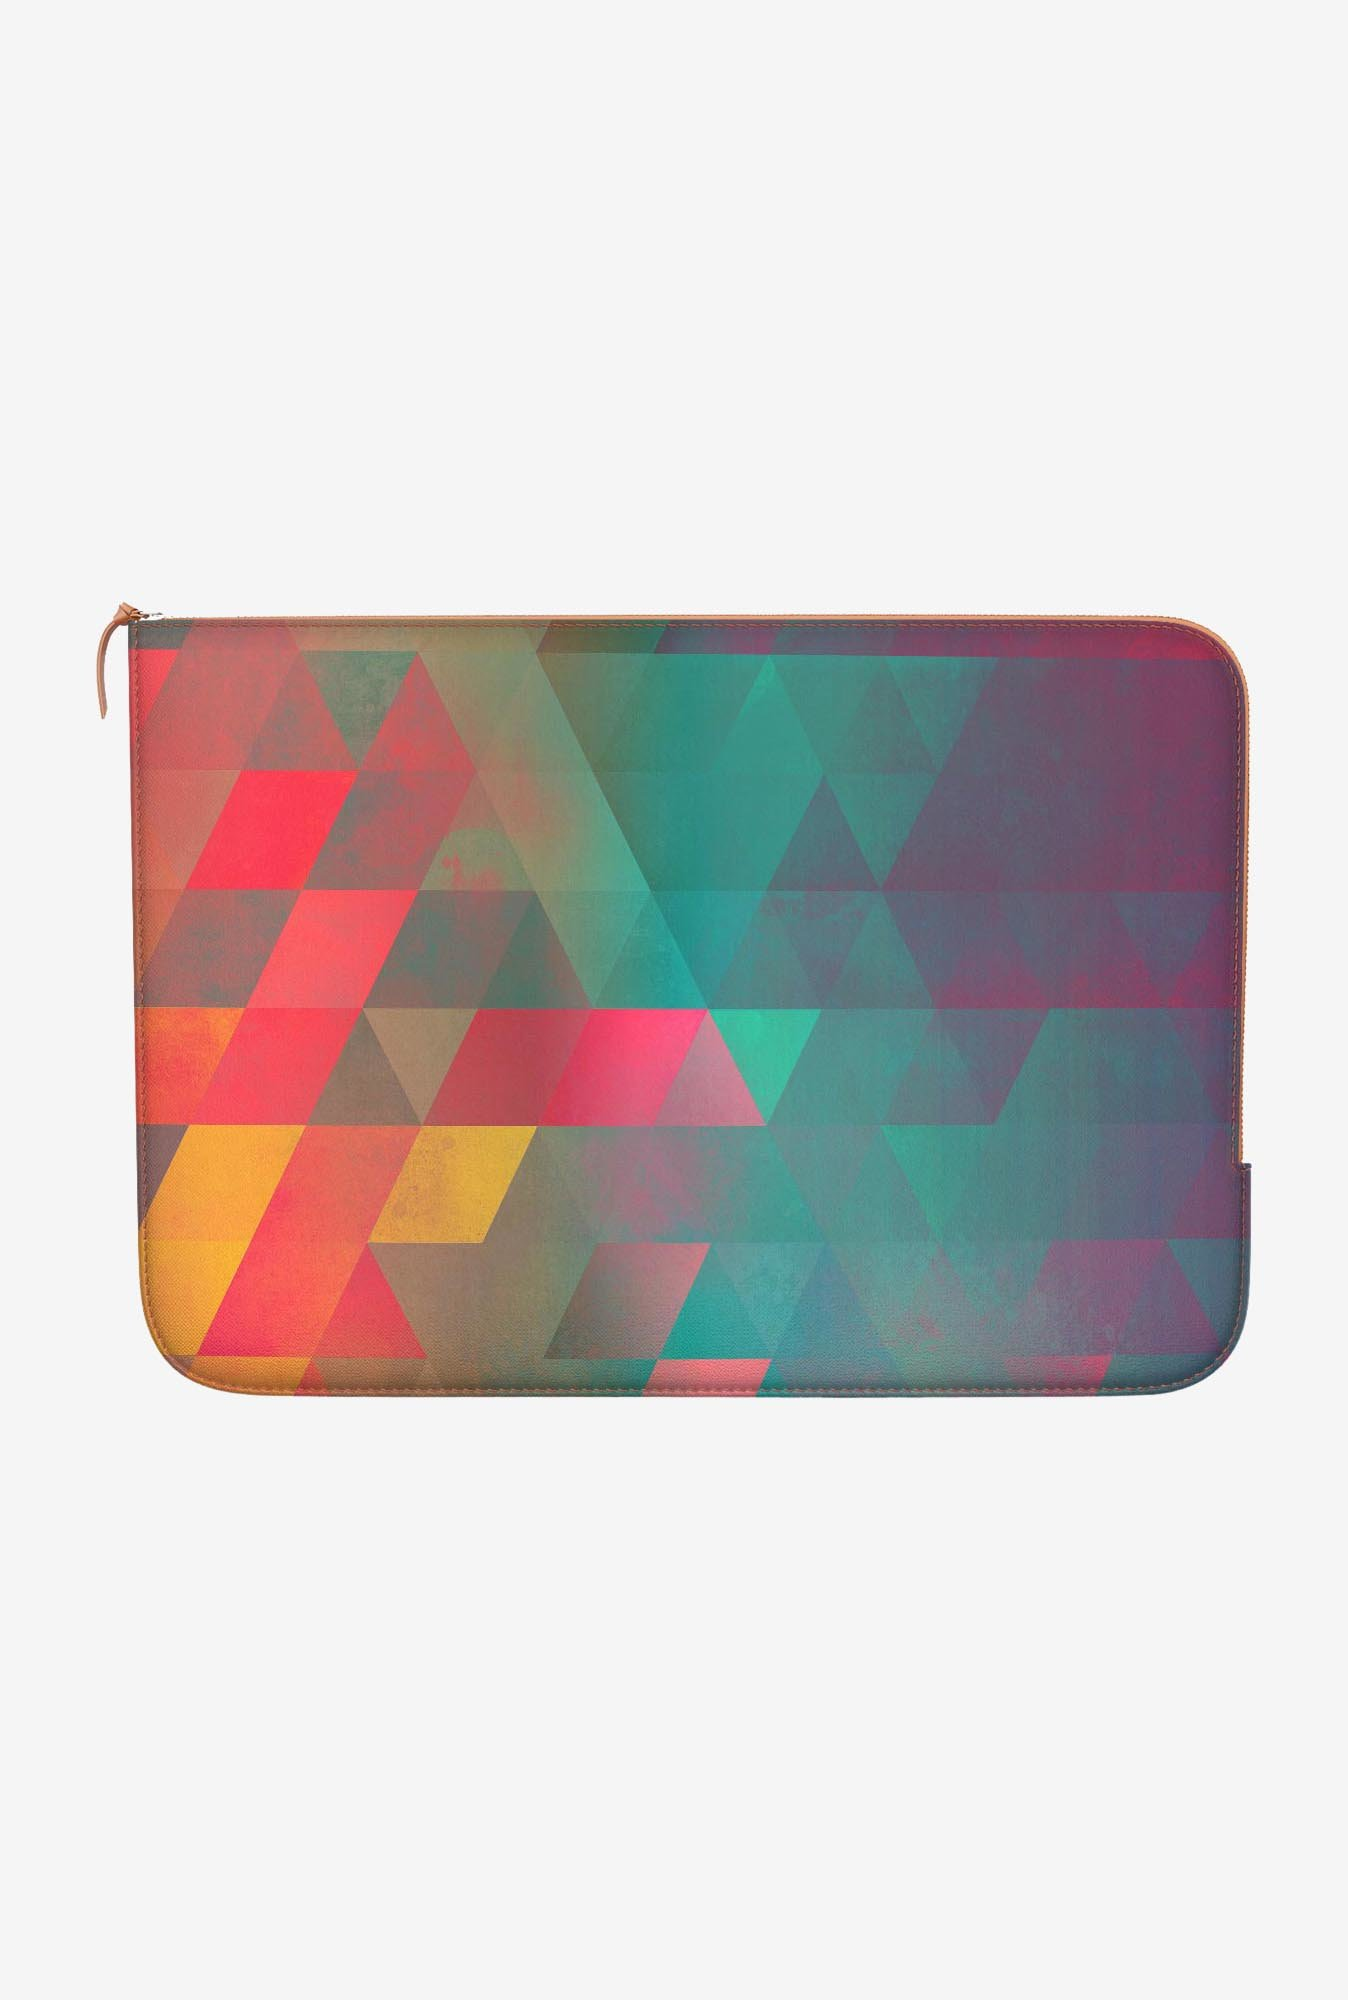 DailyObjects Byych Fyre Hrxtl Macbook Air 13 Zippered Sleeve